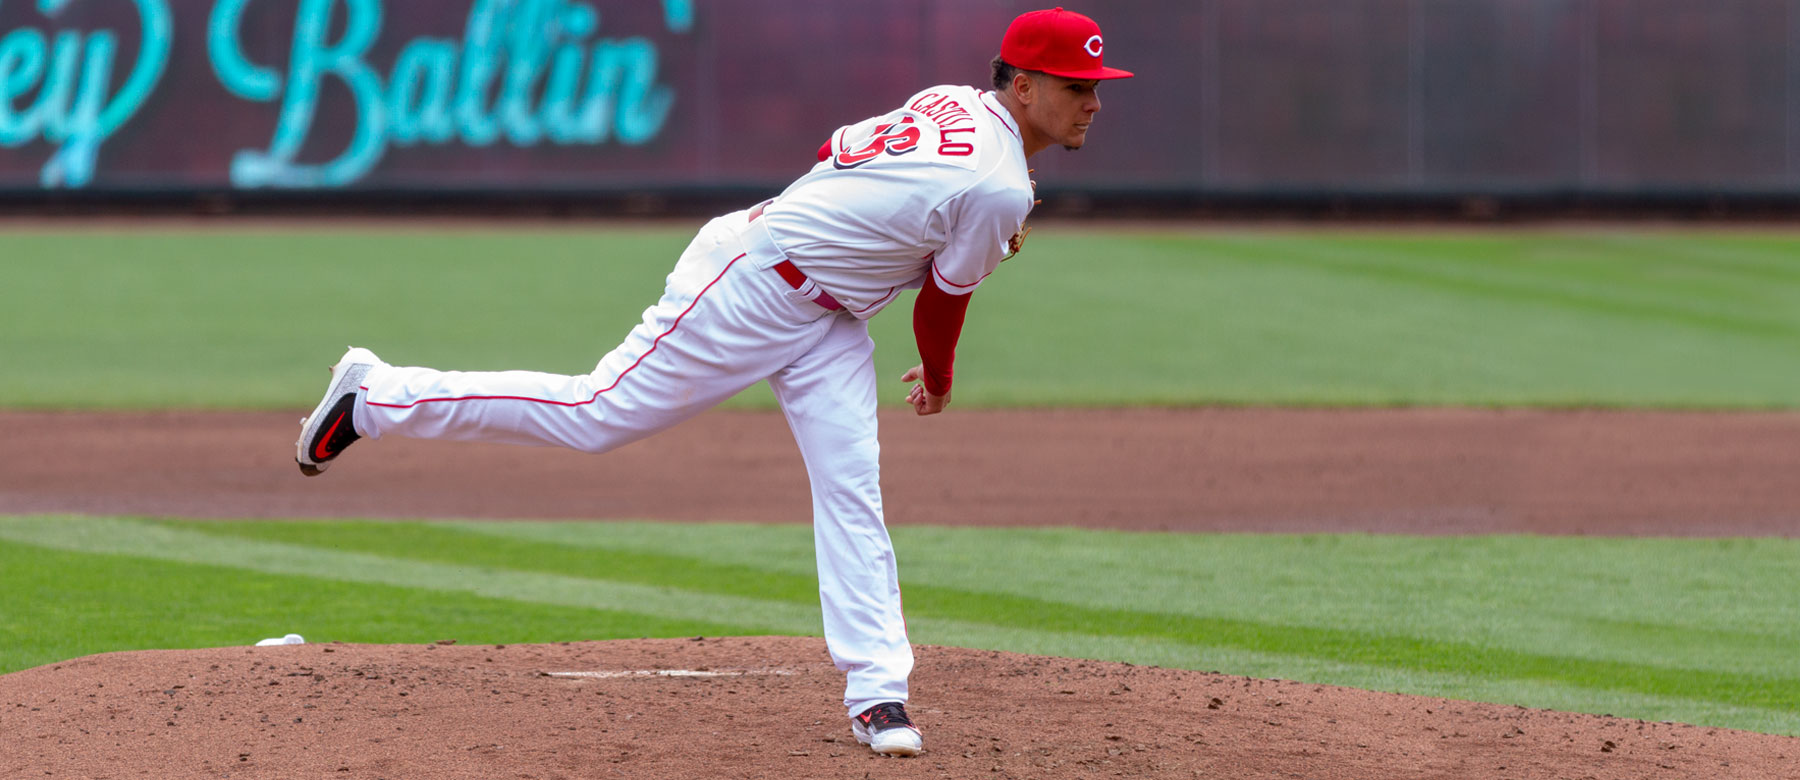 Steve Sax: The Reds will win 90 games in 2020 - Redleg Nation